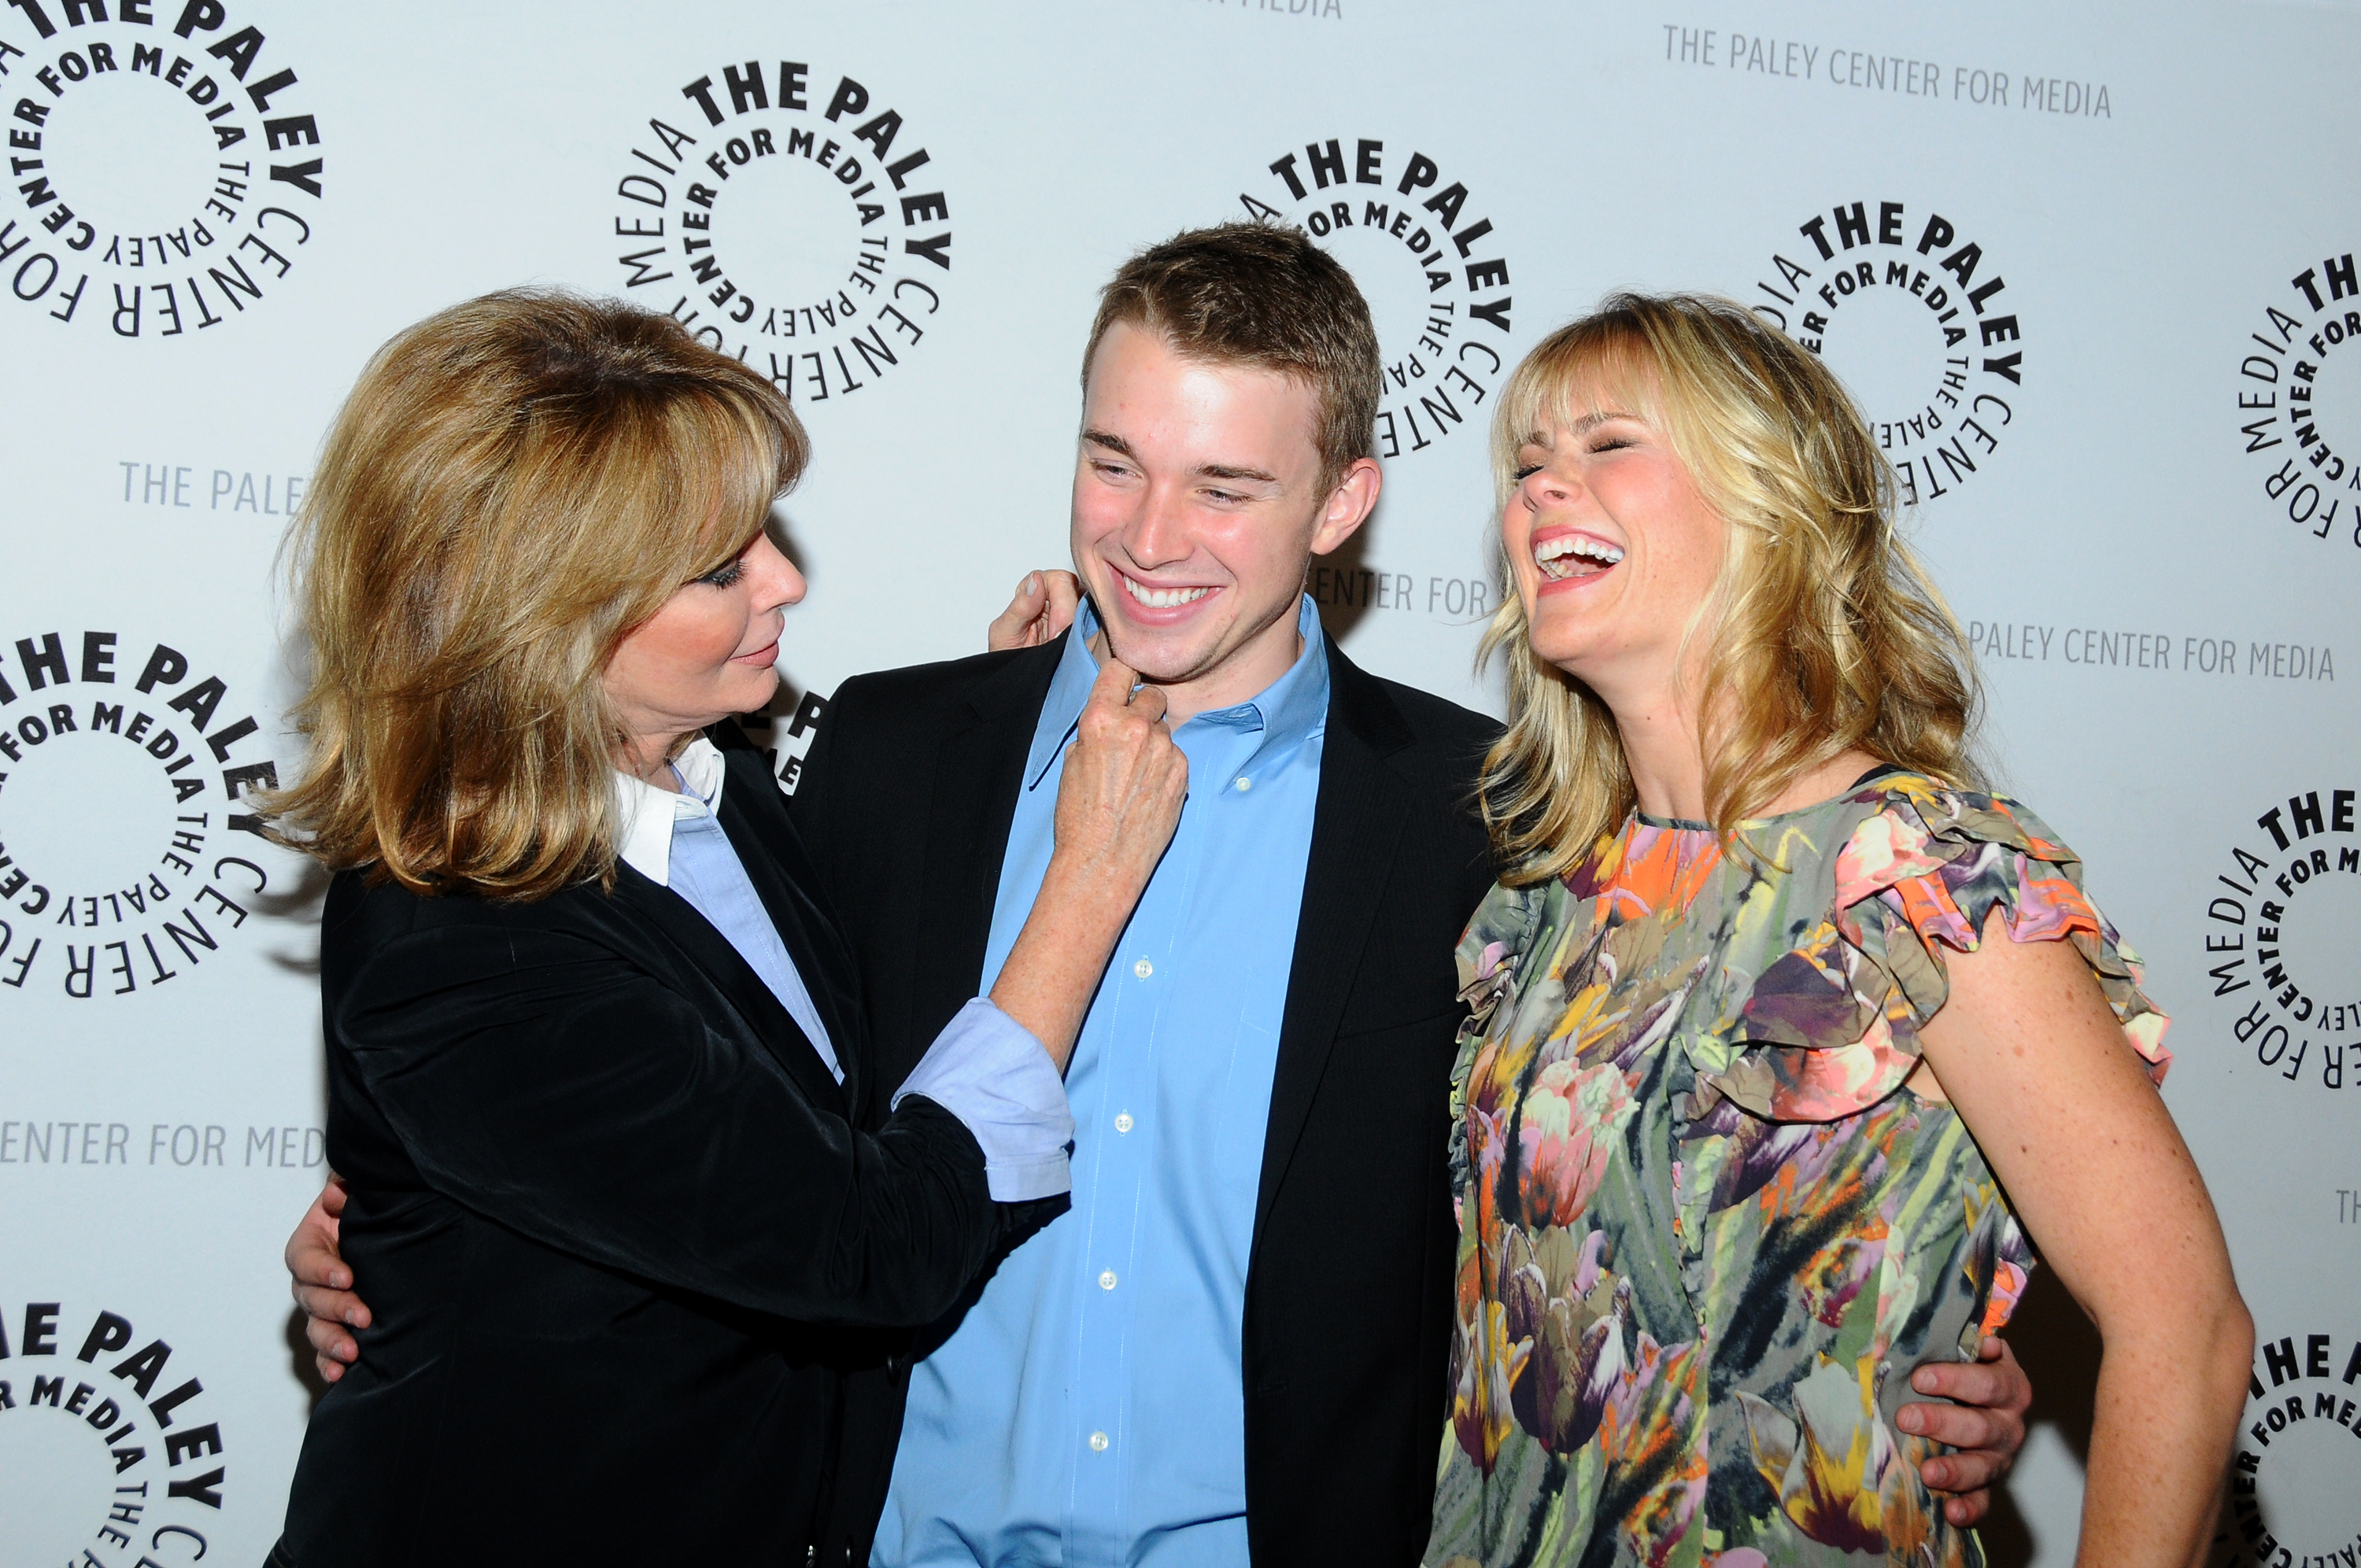 Deidre Hall, Chandler Massey, and Alison Sweeney from Days of Our Lives